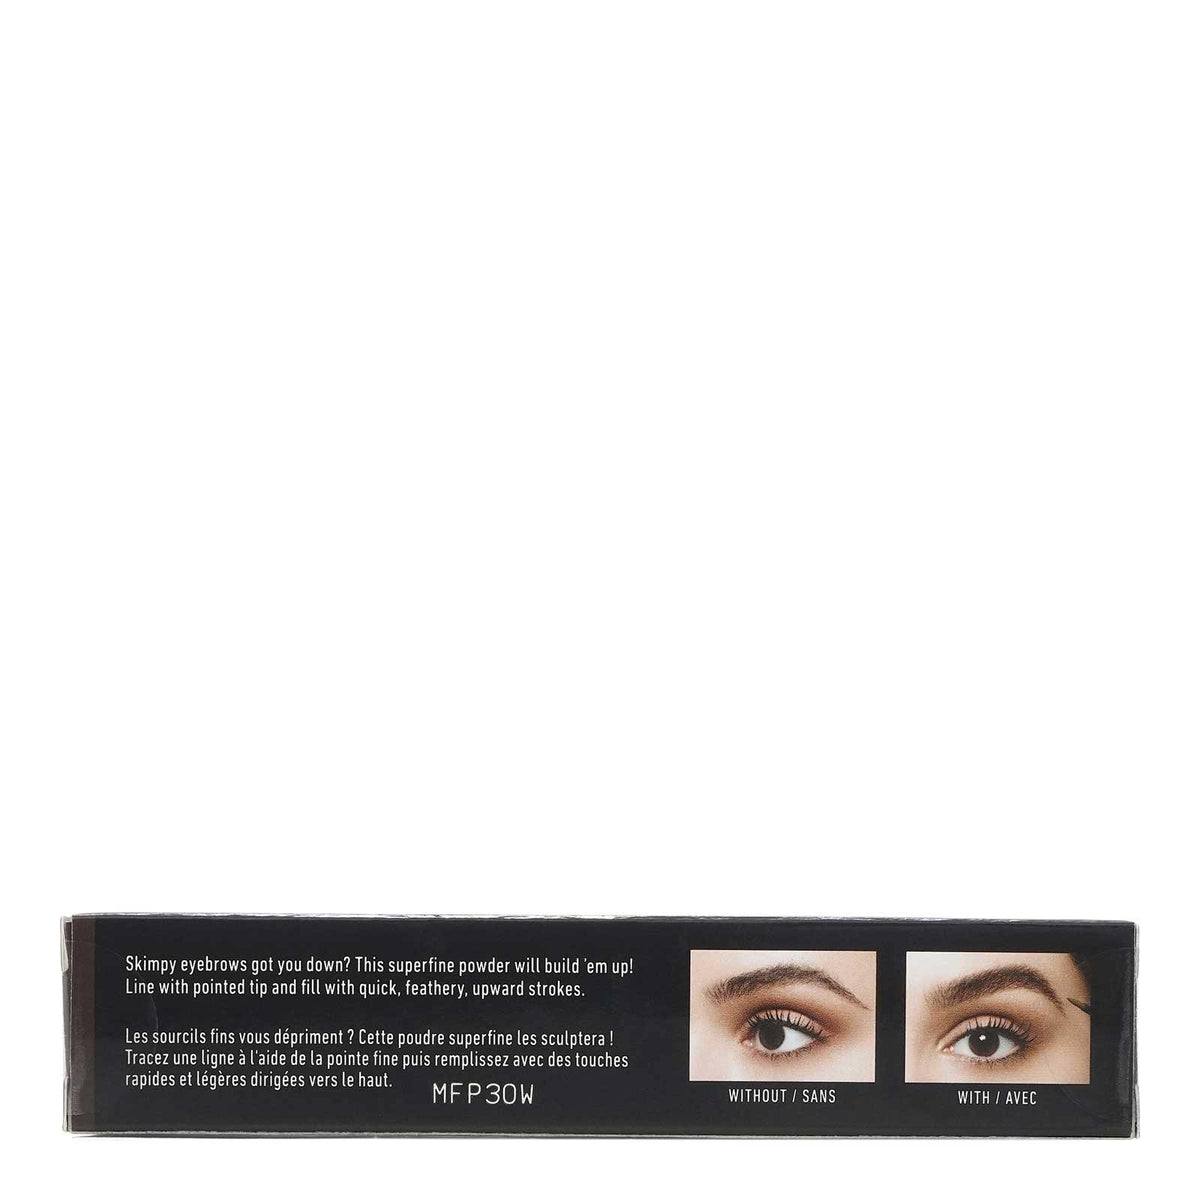 NYX BUILD EM UP BROW POWDER (24/cs)